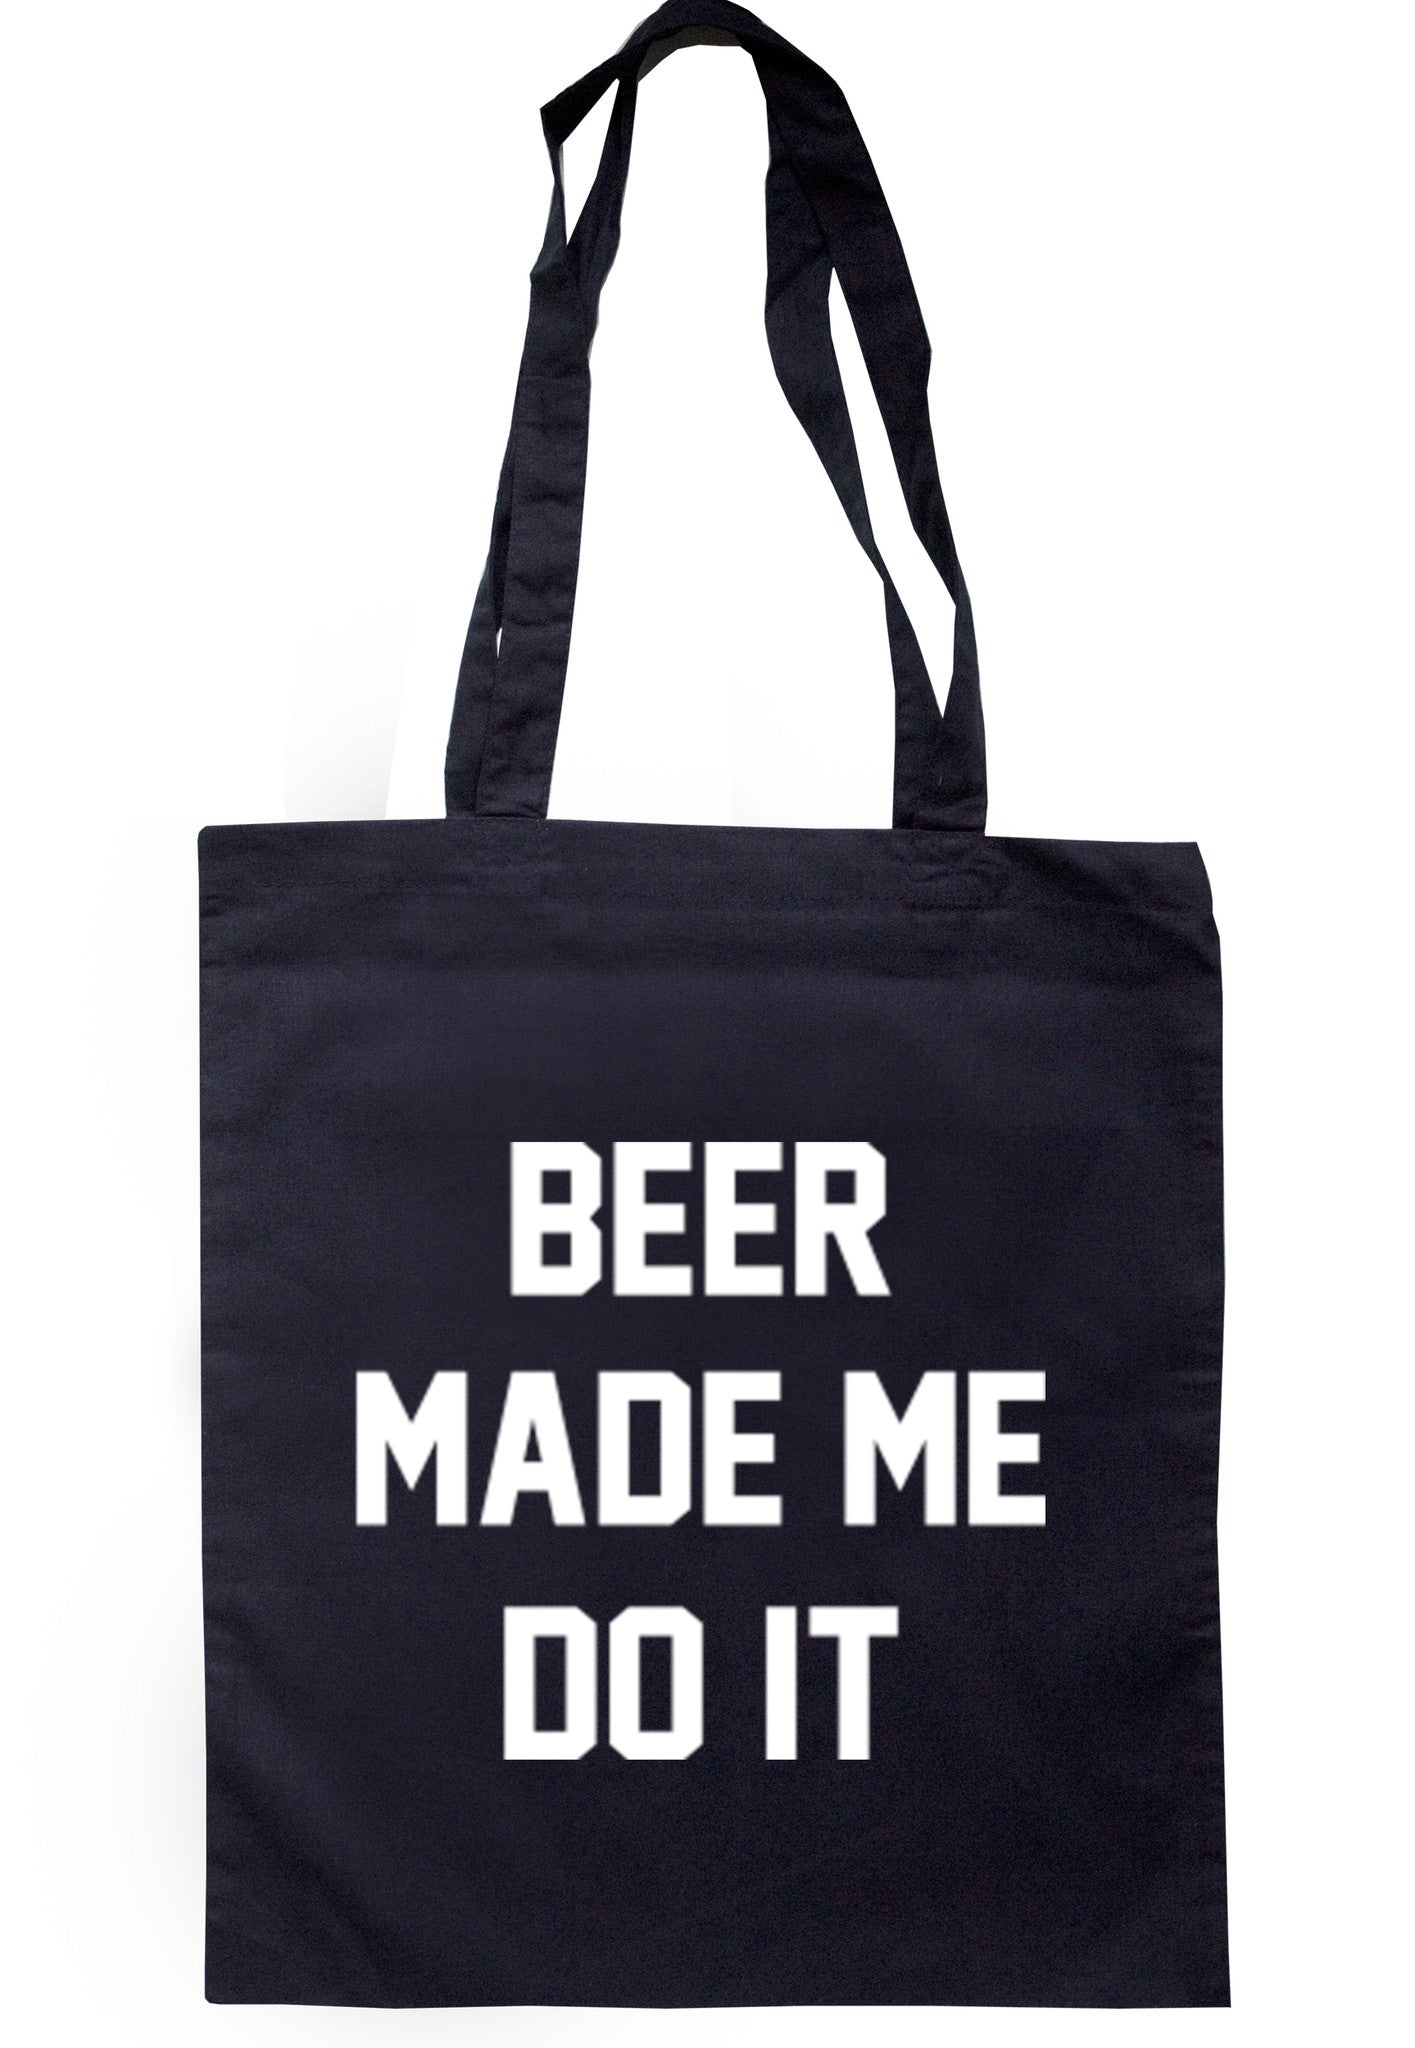 Beer Made Me Do It Tote Bag TB0018 - Illustrated Identity Ltd.